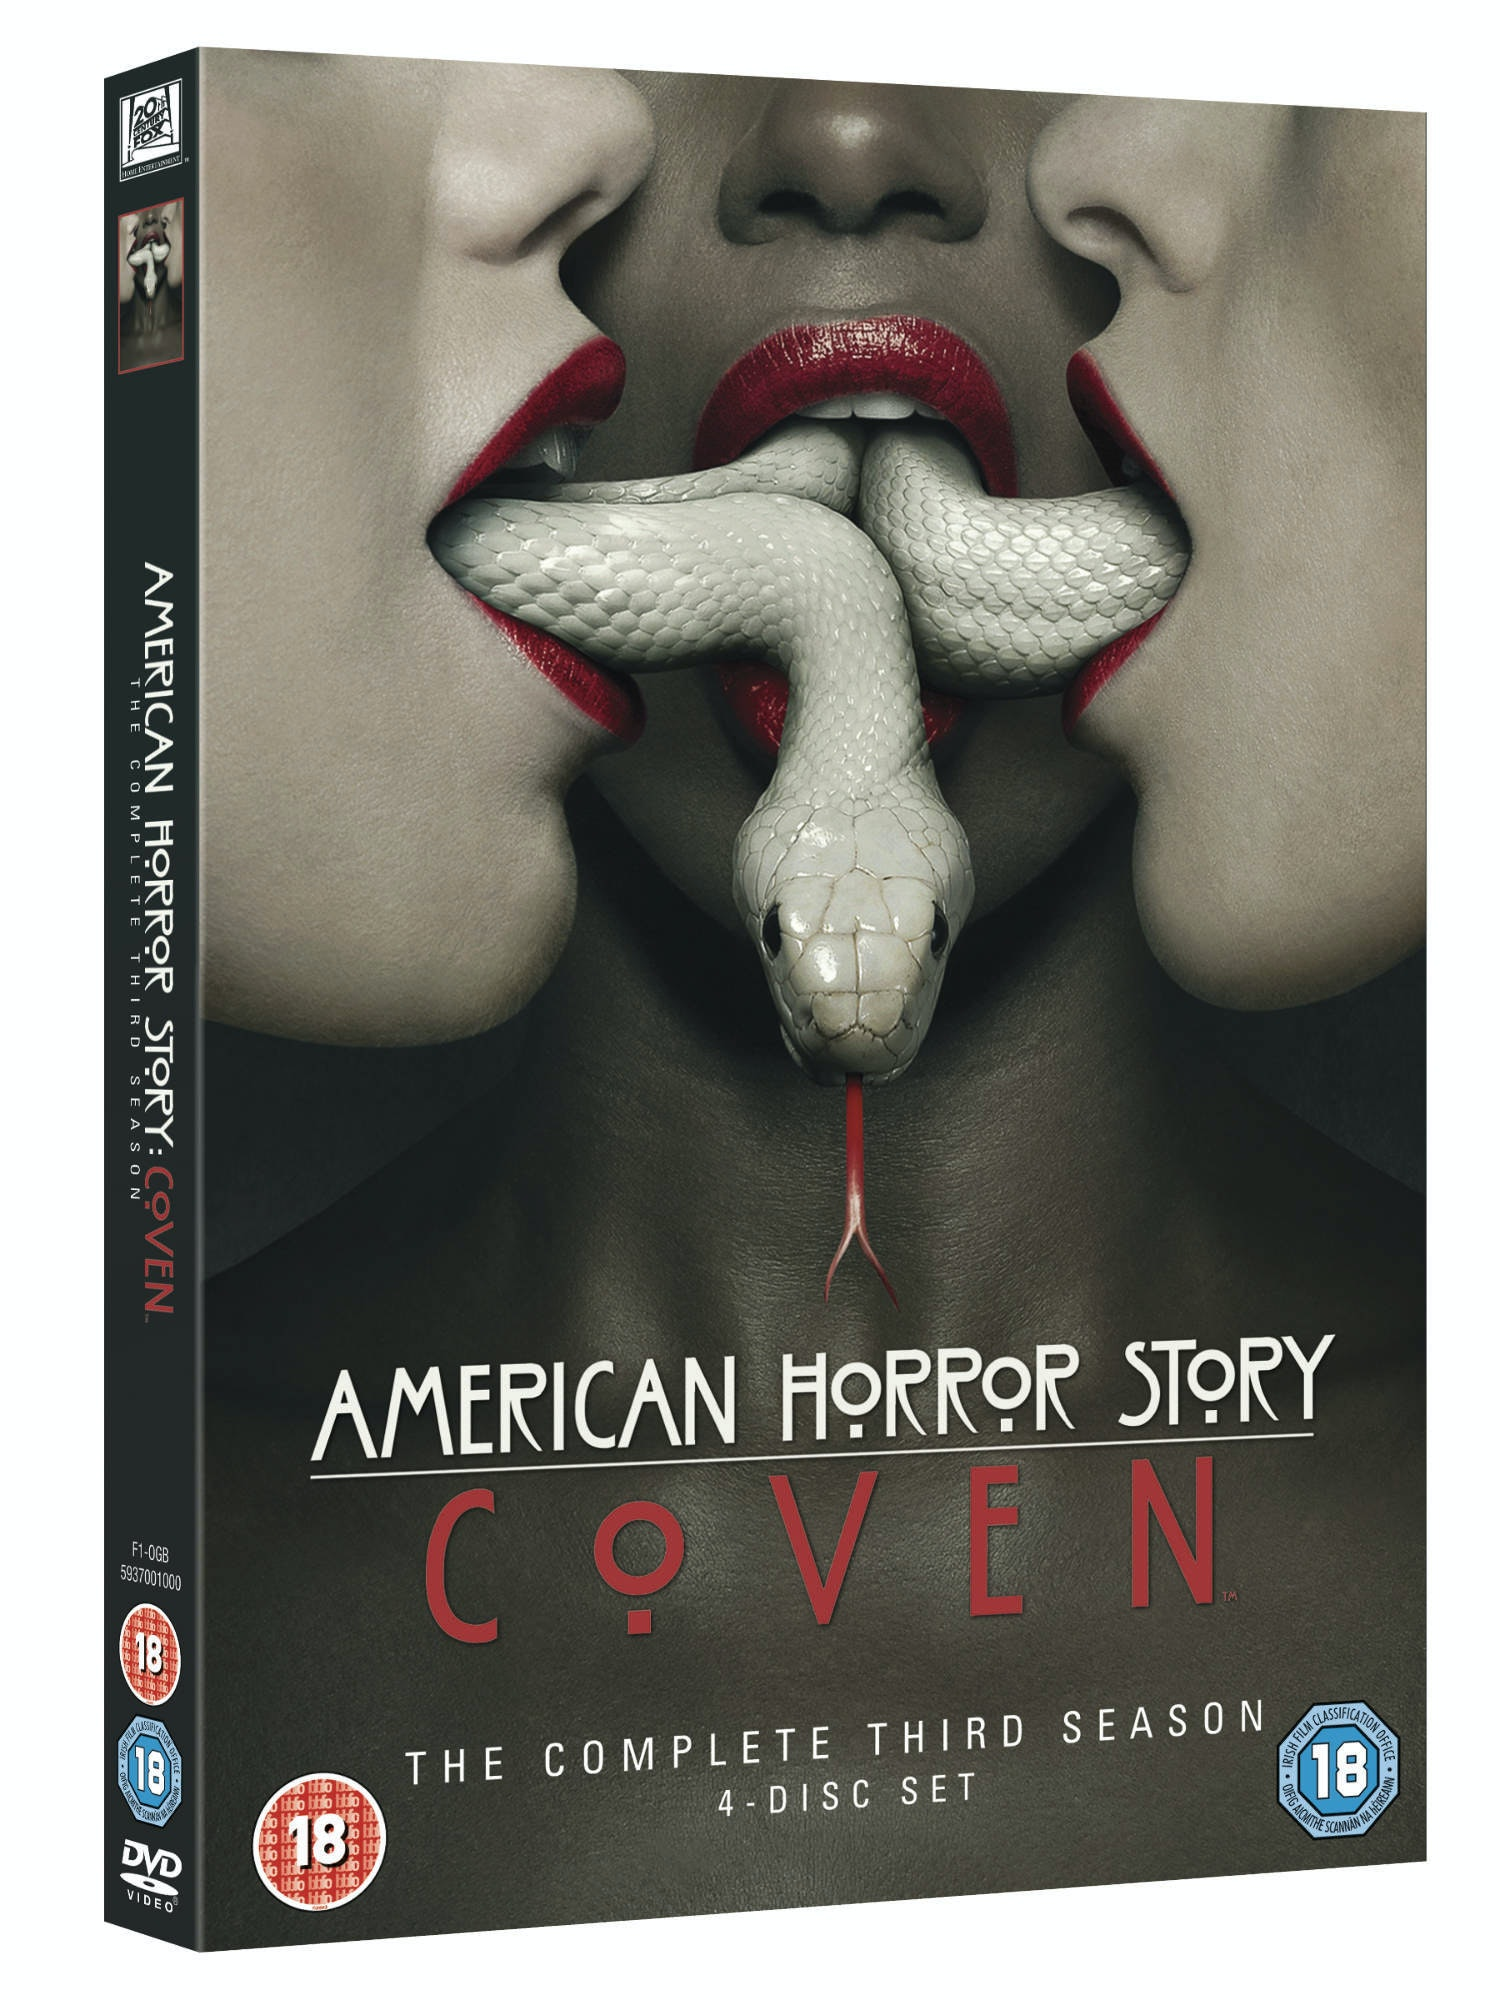 American Horror Story sweepstakes